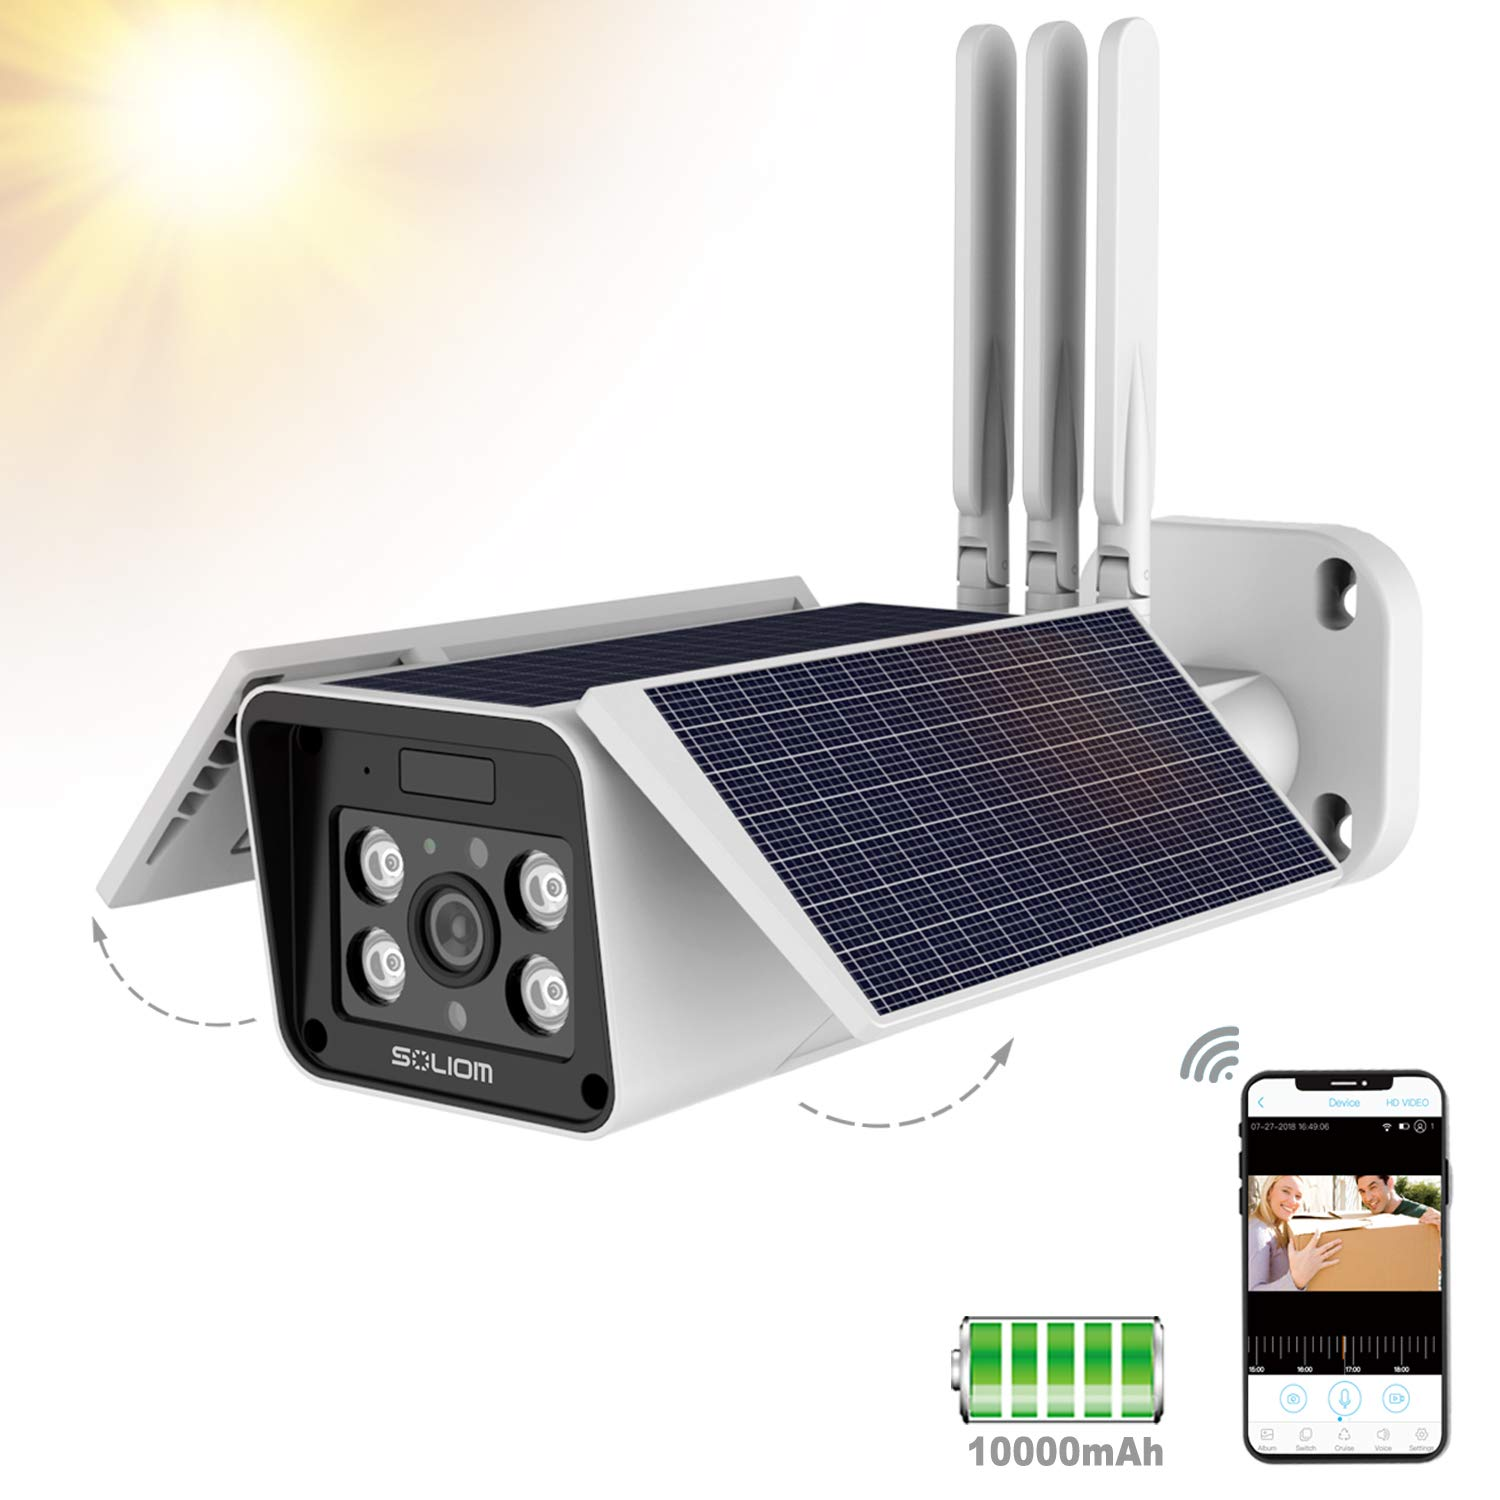 Outdoor Home Security Solar Battery Camera, Soliom S90 Pro 1080P Wireless Smart IP Cam with Night Vision, Two Way Audio and Accurate Motion Detection,Monitor with iOS, Android App - No Monthly Fee. by SOLIOM